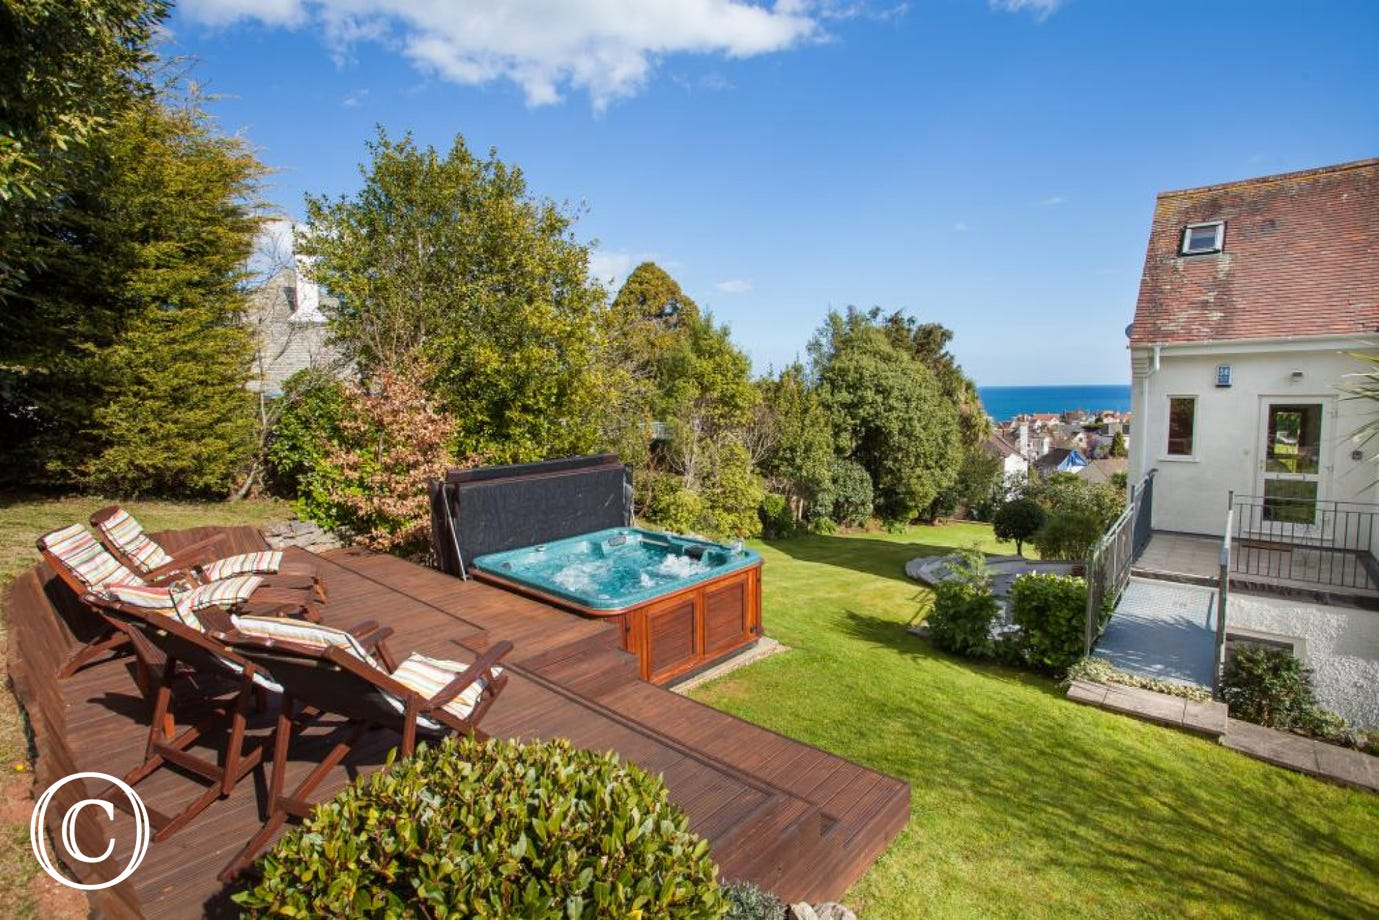 Relaxation Guaranteed Inside and Out at Ben's Place self-catering holiday apartment with private hot tub and sea views in Torquay, Devon